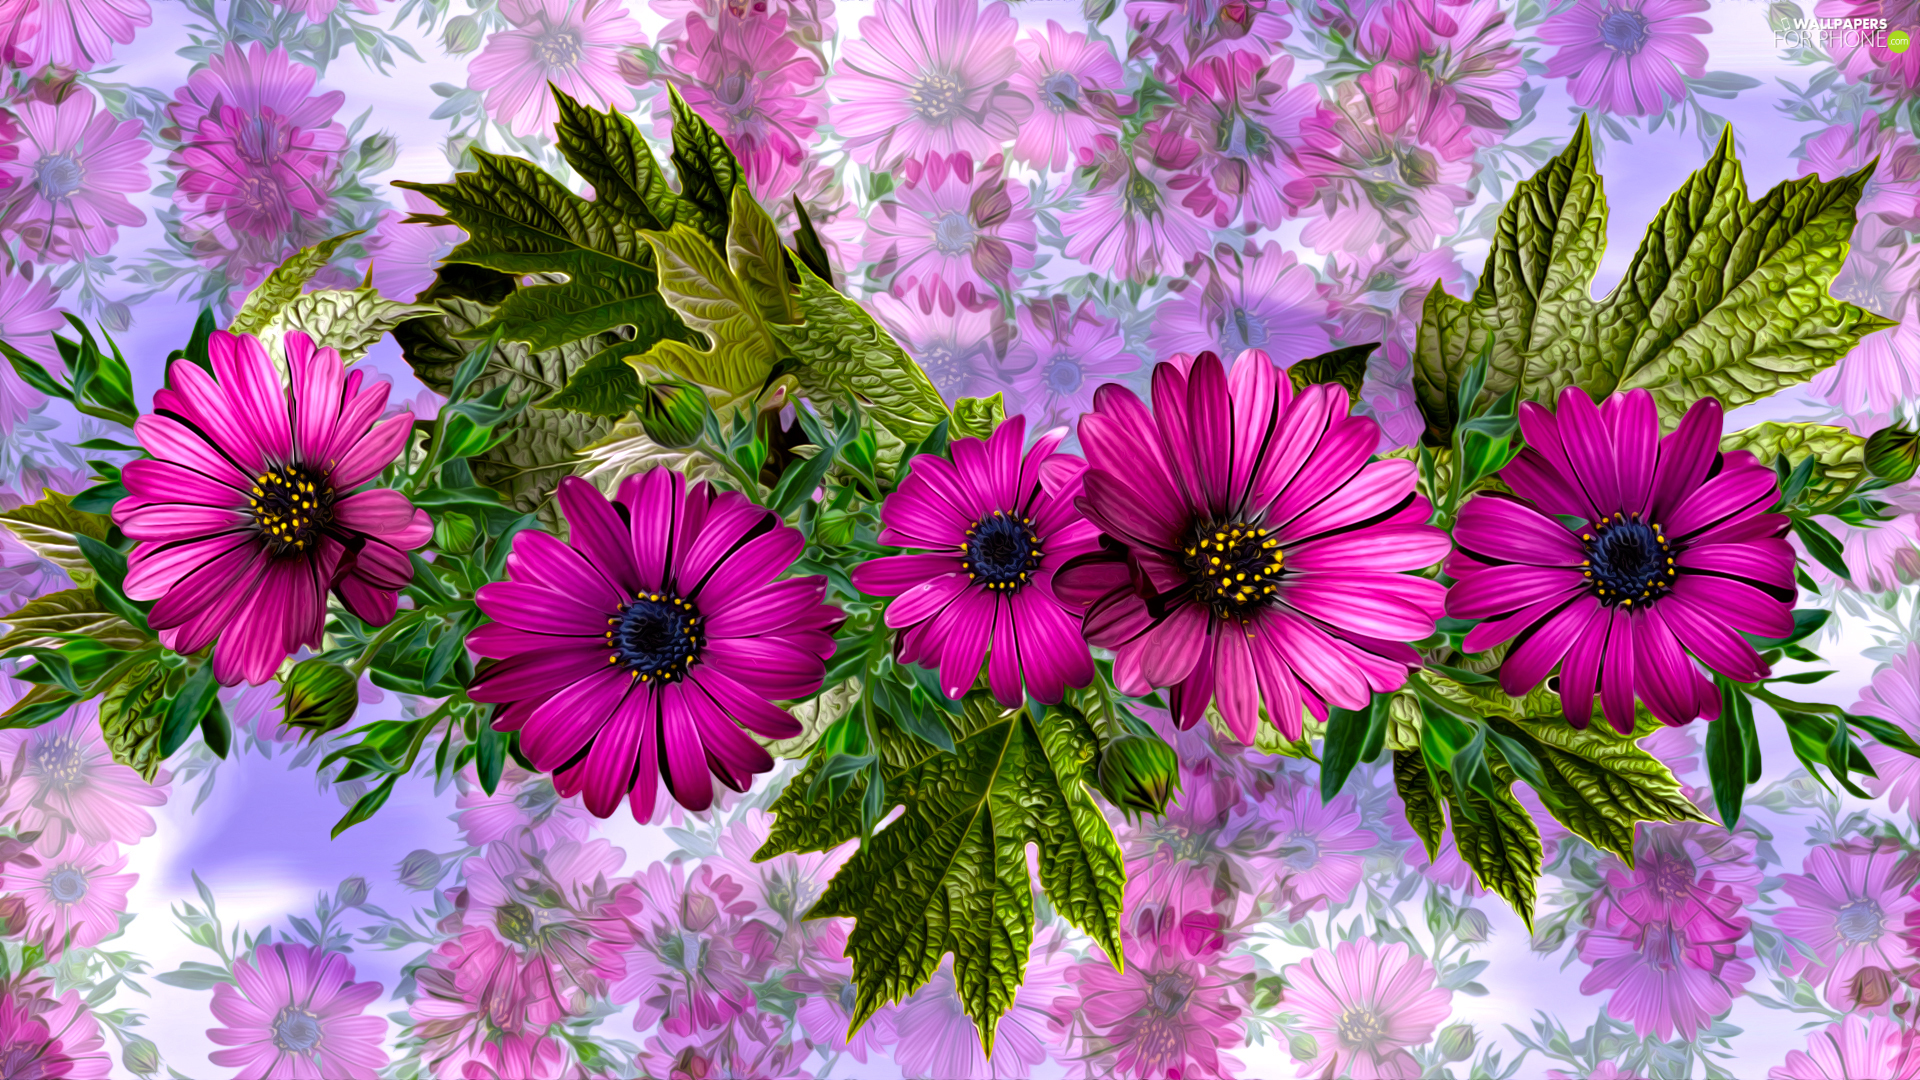 graphics, Flowers, African Daisy